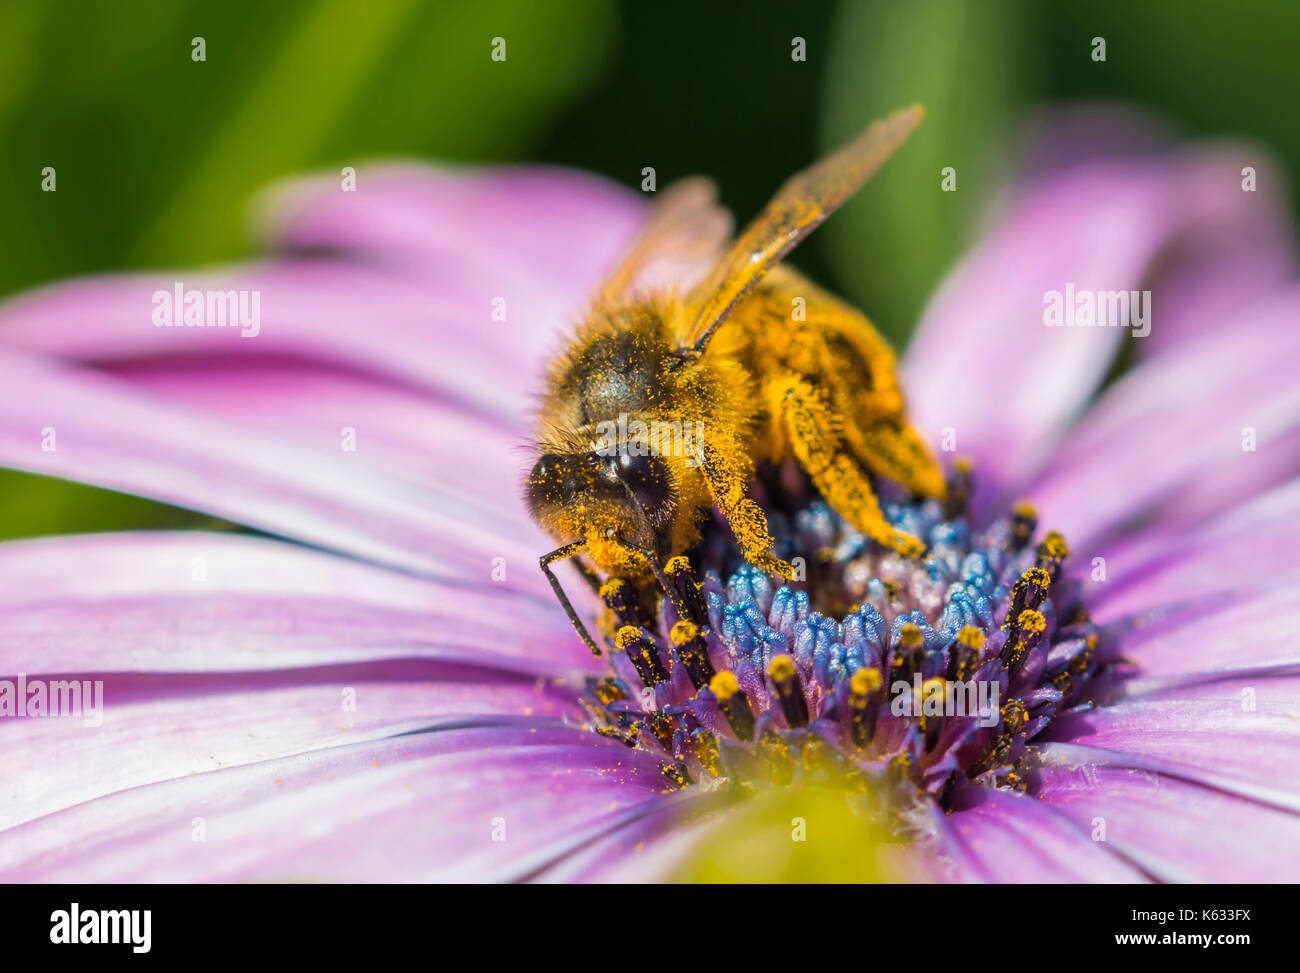 Honey Bee (Apis mellifera) on a Osteospermum ecklonis (African daisy) collecting nectar / pollinating the flower, in West Sussex, England, UK. - Stock Image